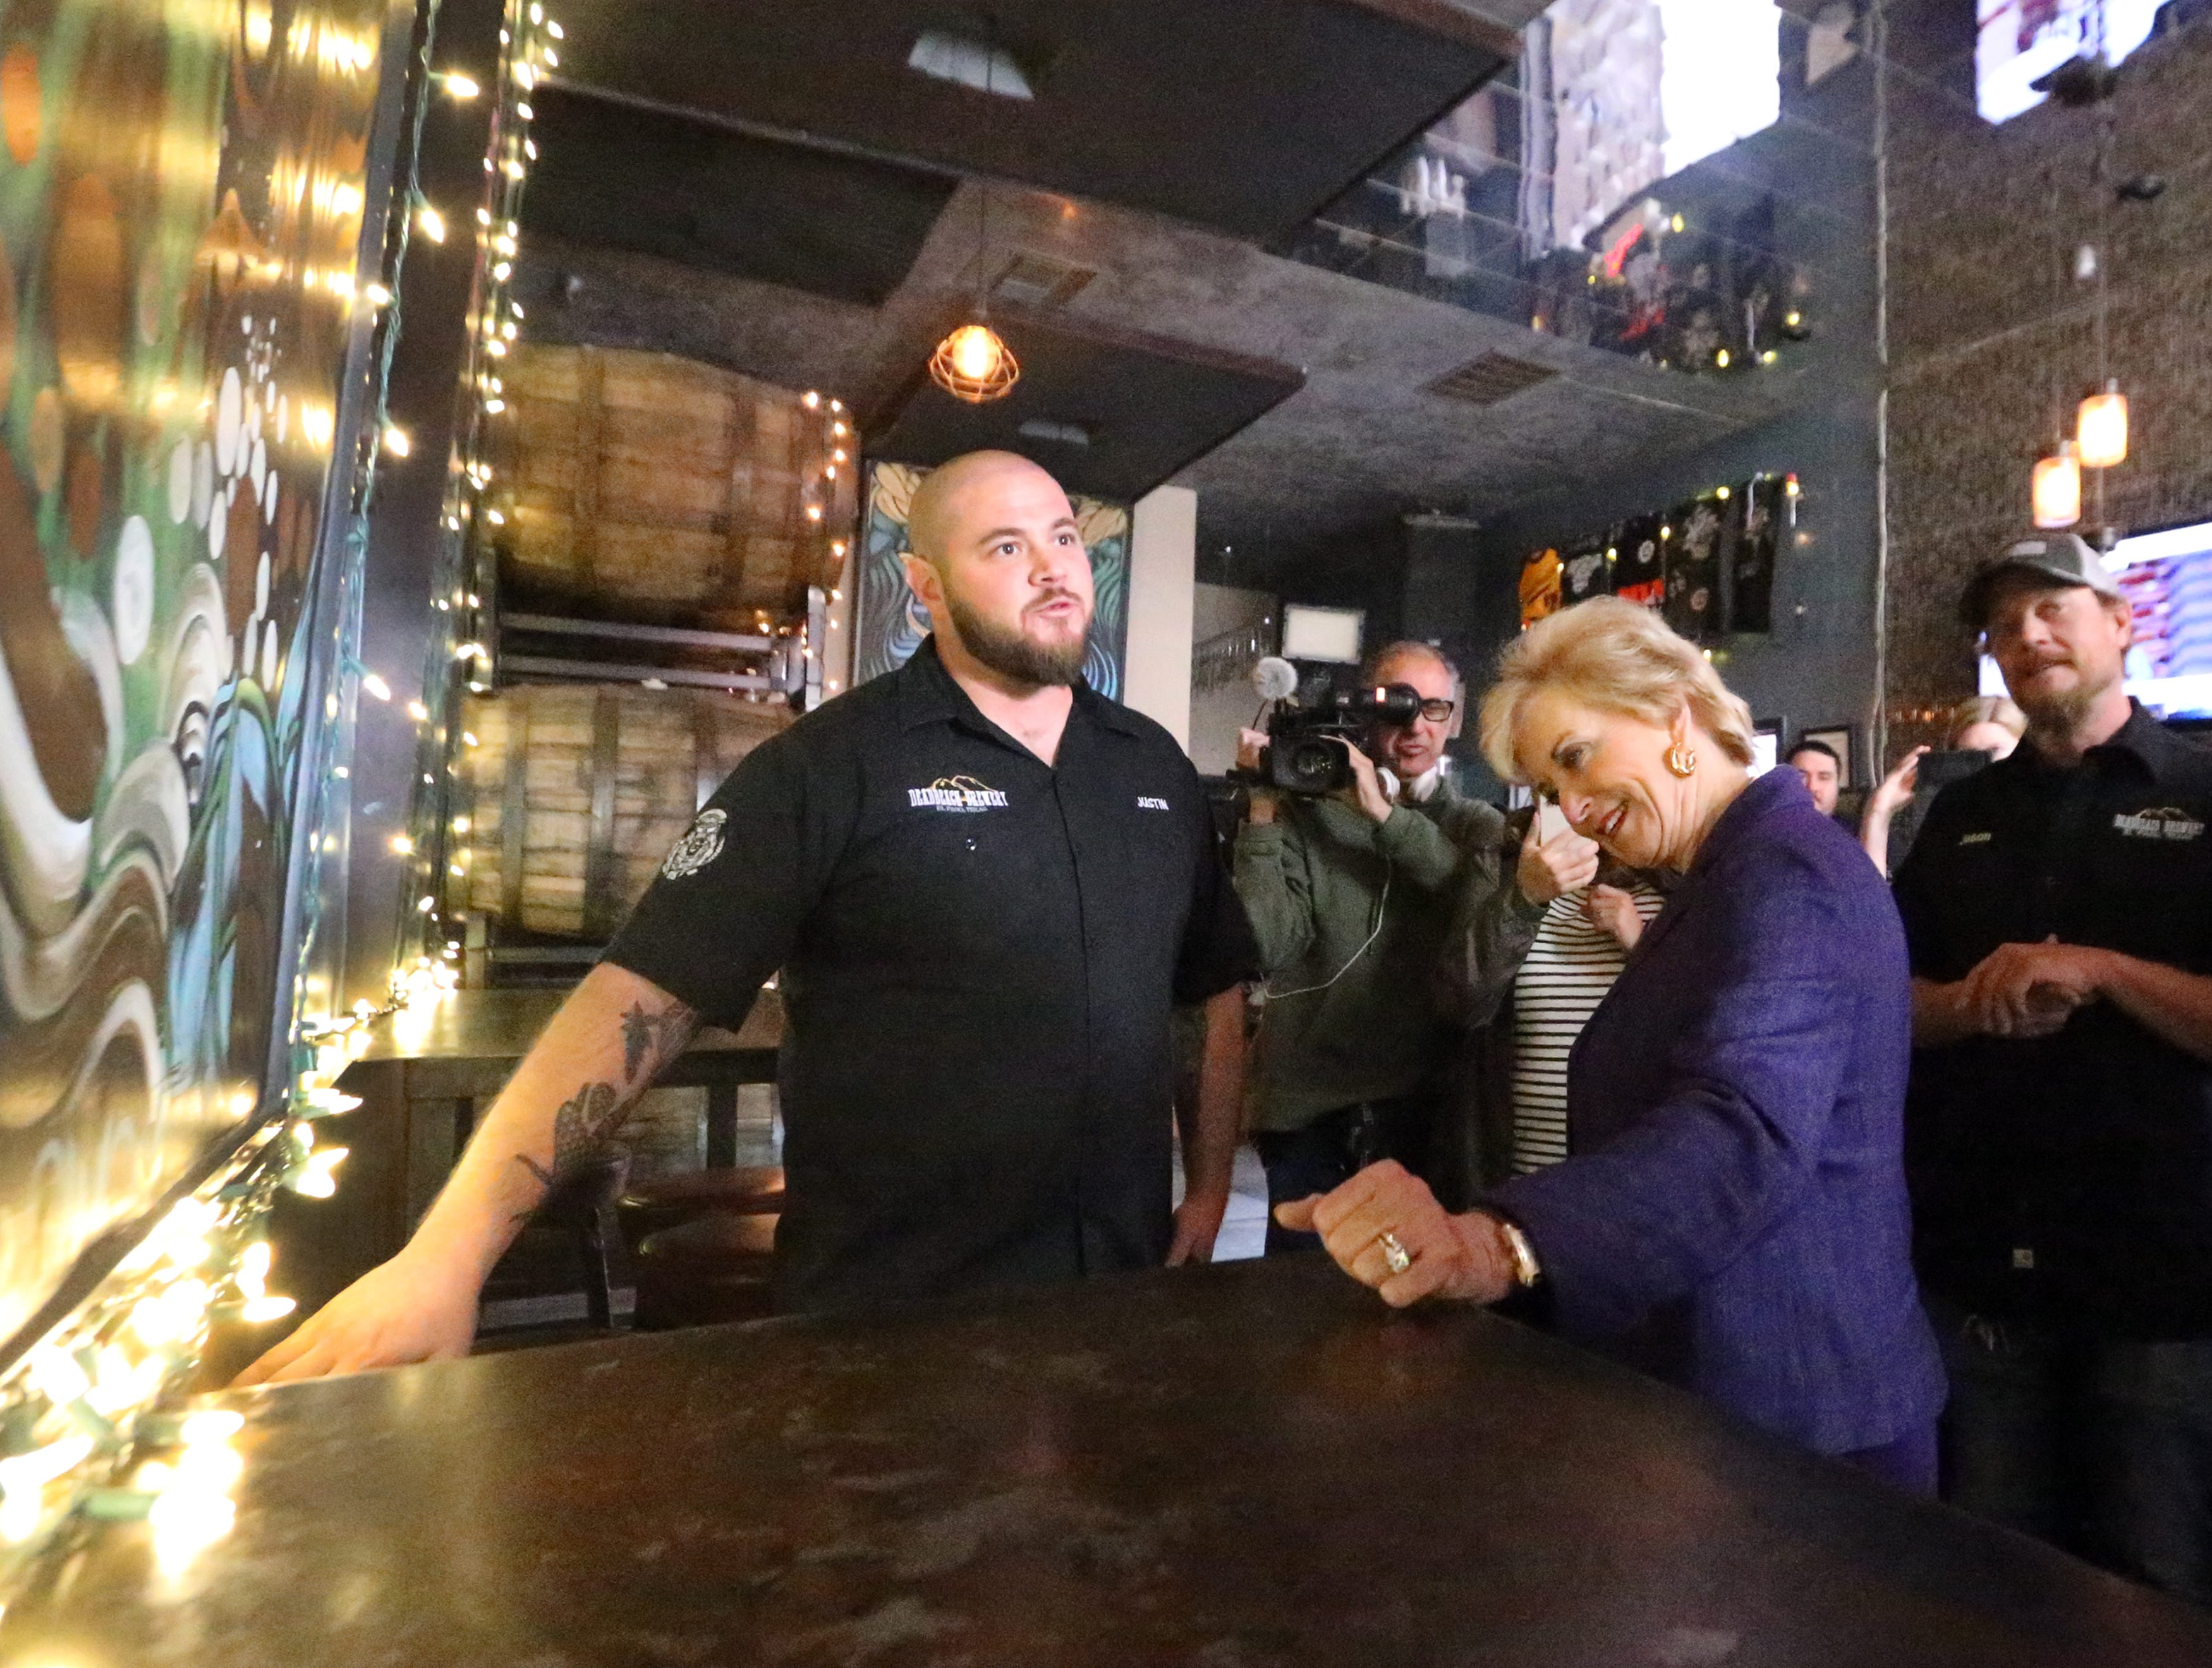 U.S. Small Business Administration director Linda McMahon, center, takes a tour of DeadBeach Brewery at 406b Durango Street during a visit to El Paso Tuesday.